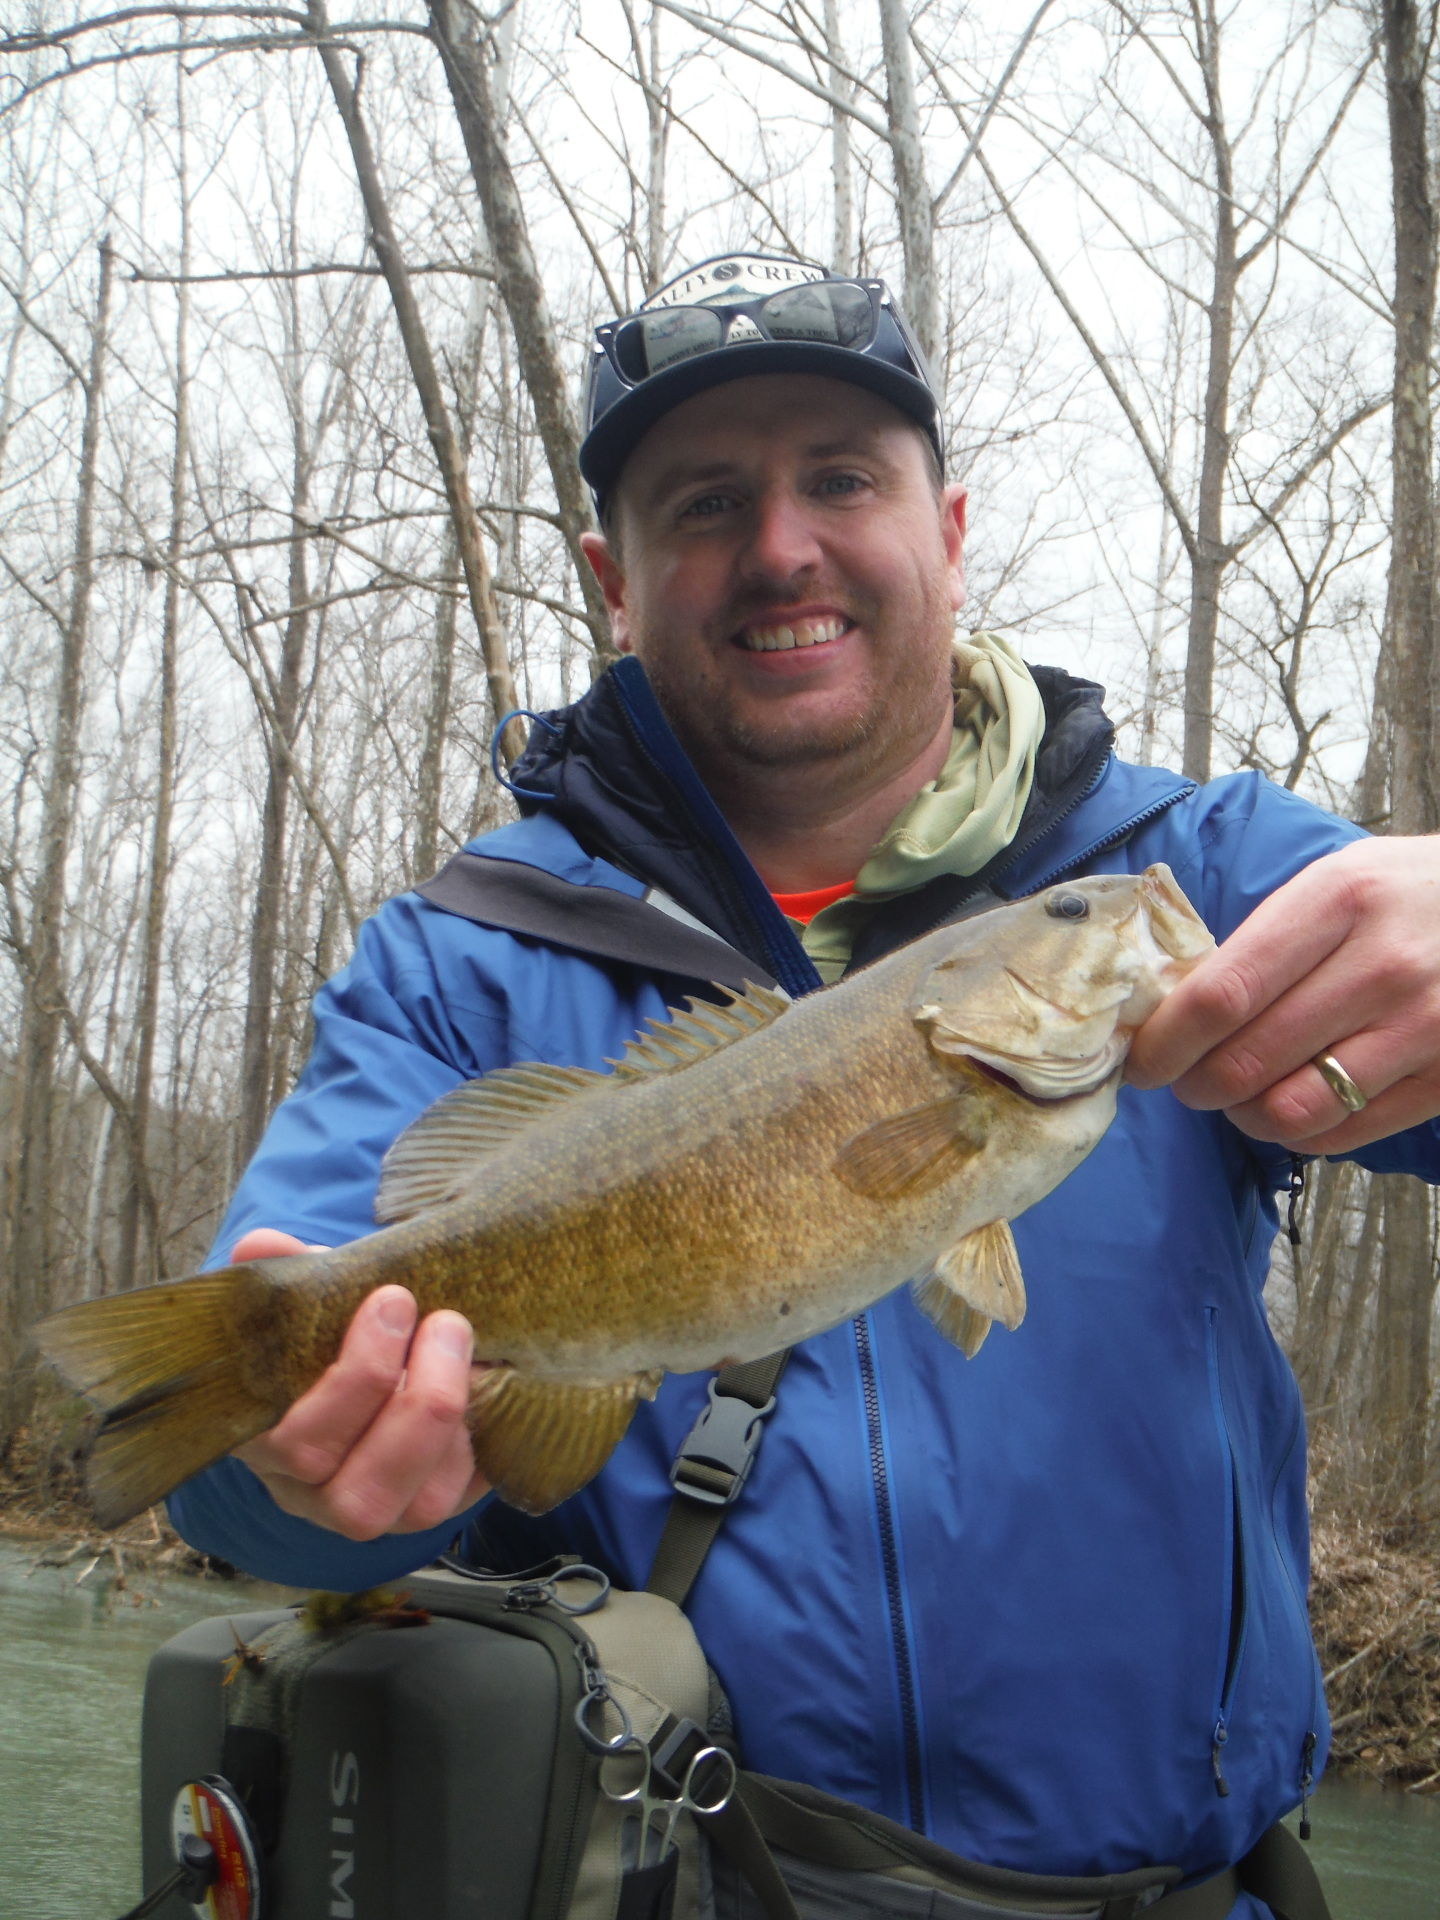 A fun day and a couple of half day smallie trips